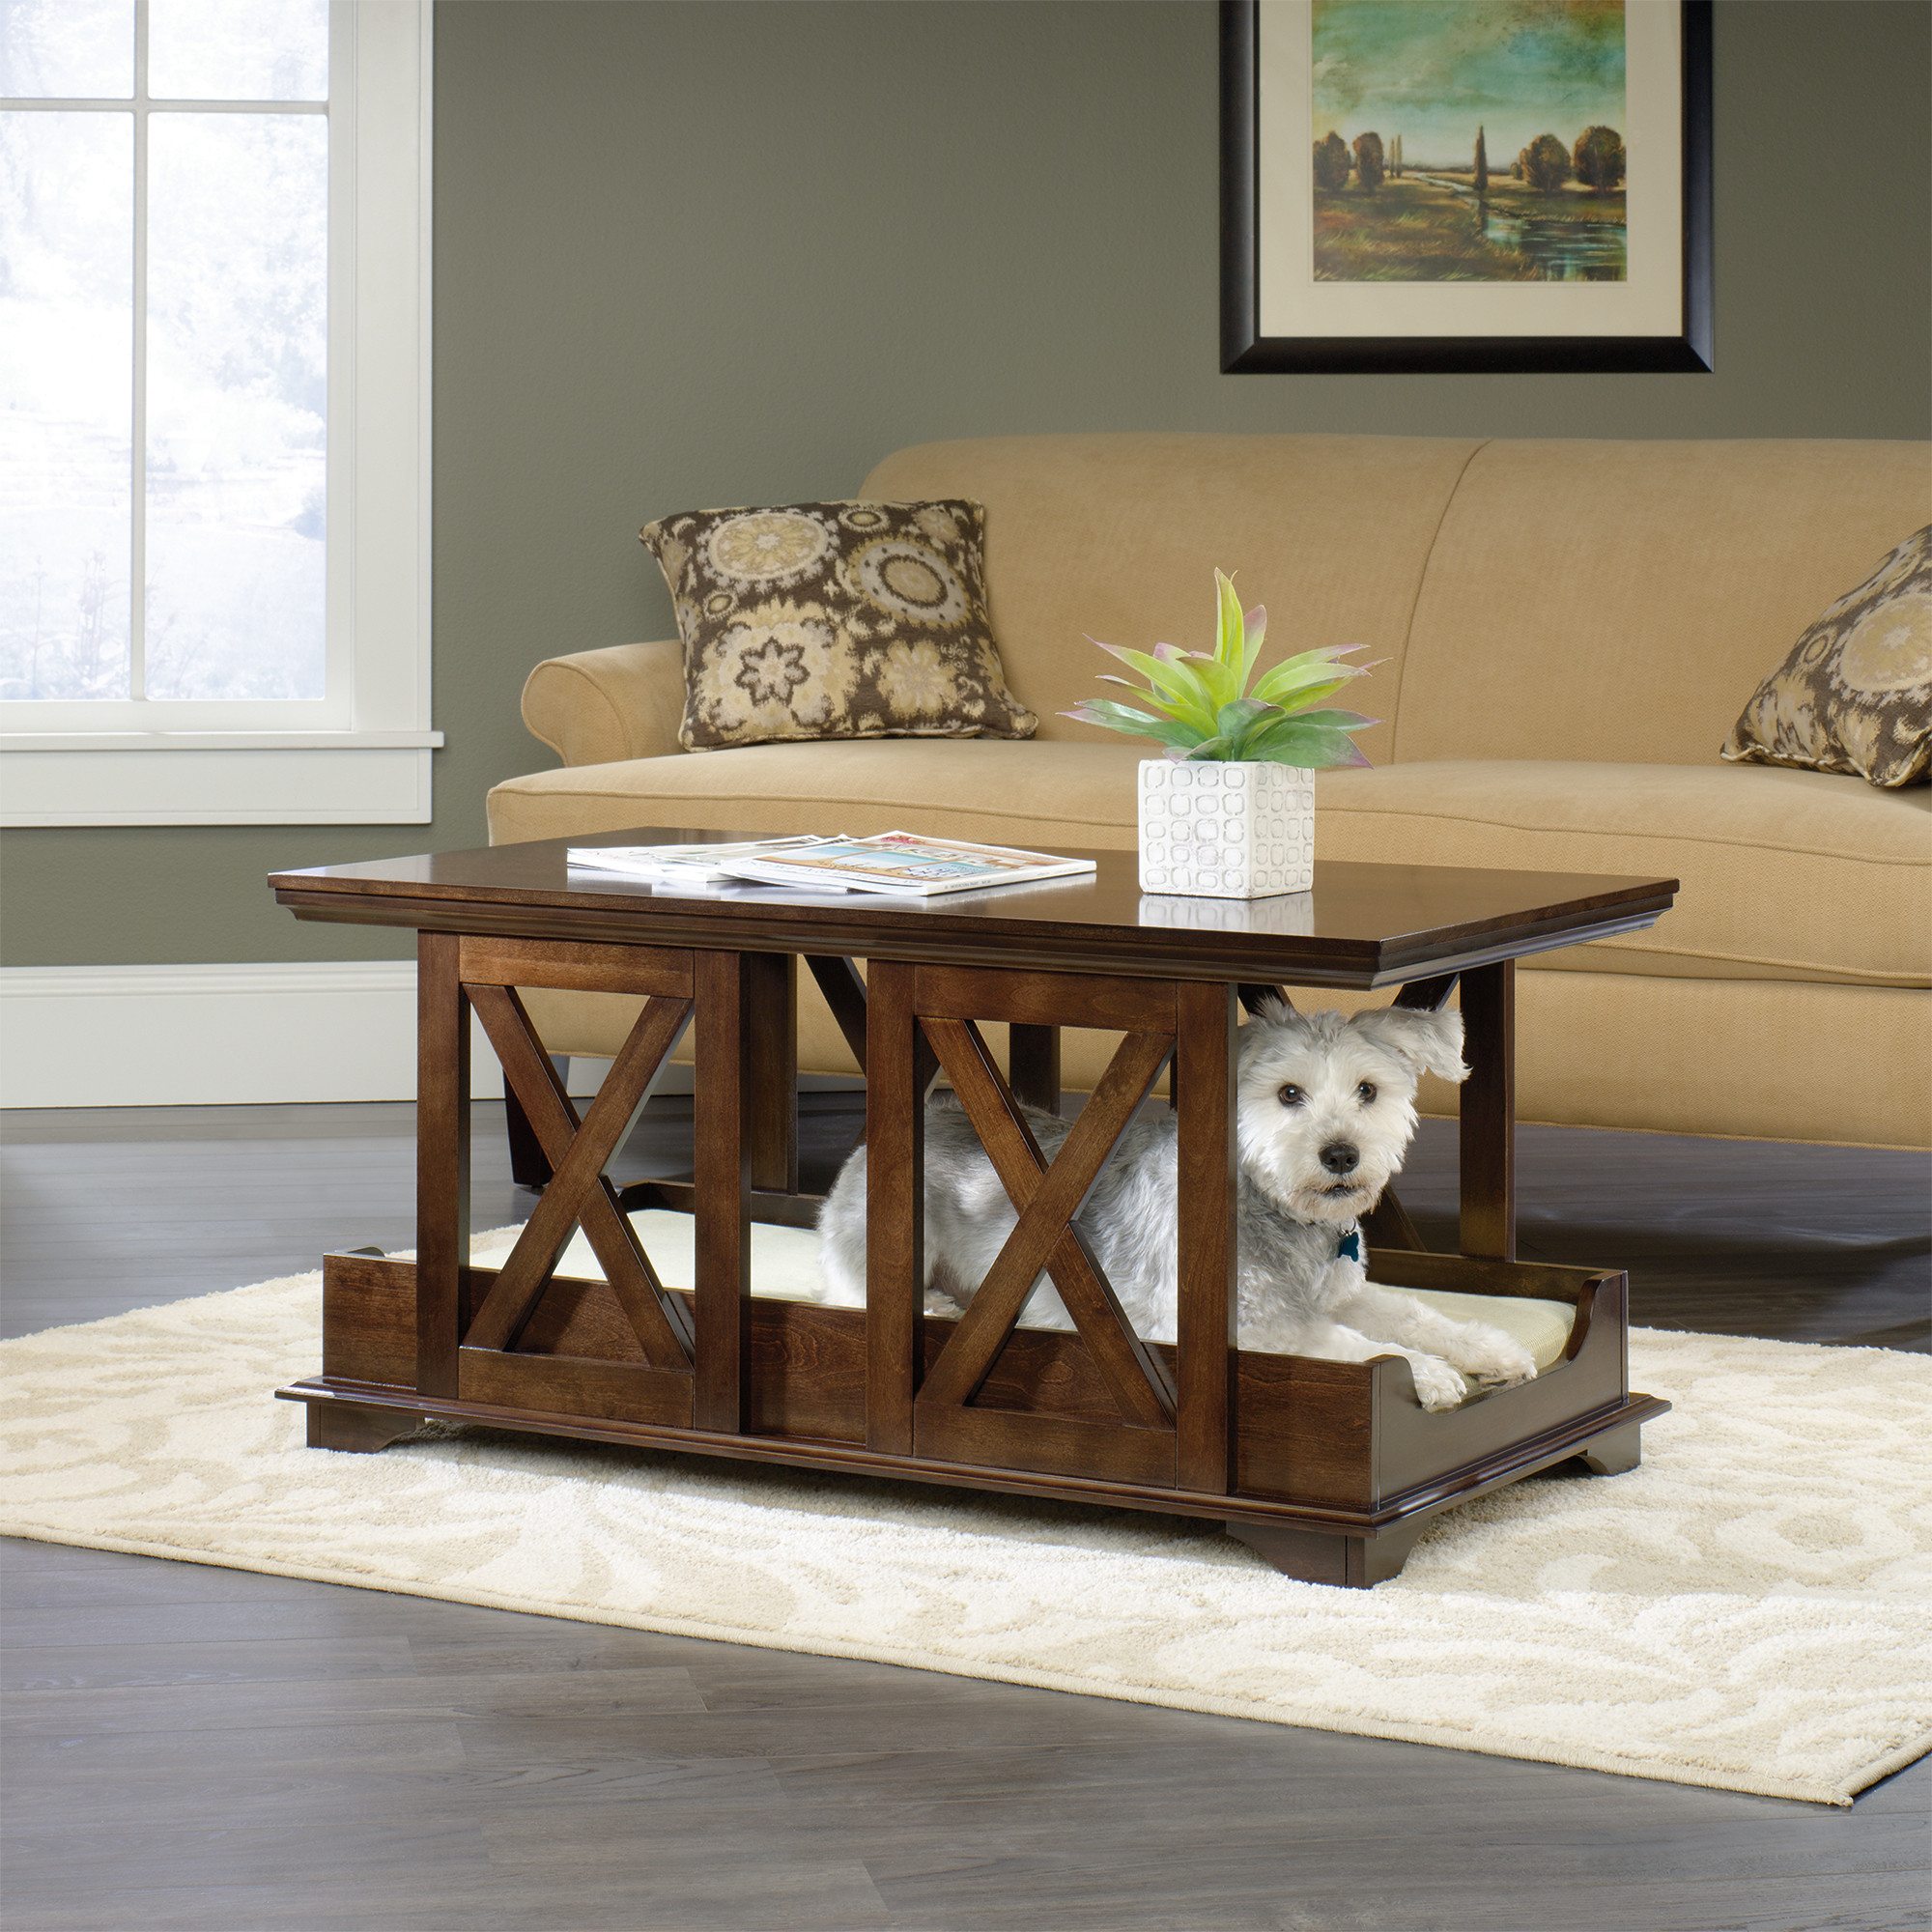 genius pet tables that will attract your attention for sure products coffee table sauder end small occasional living room black pipe ideas italian furniture sofa bedside night